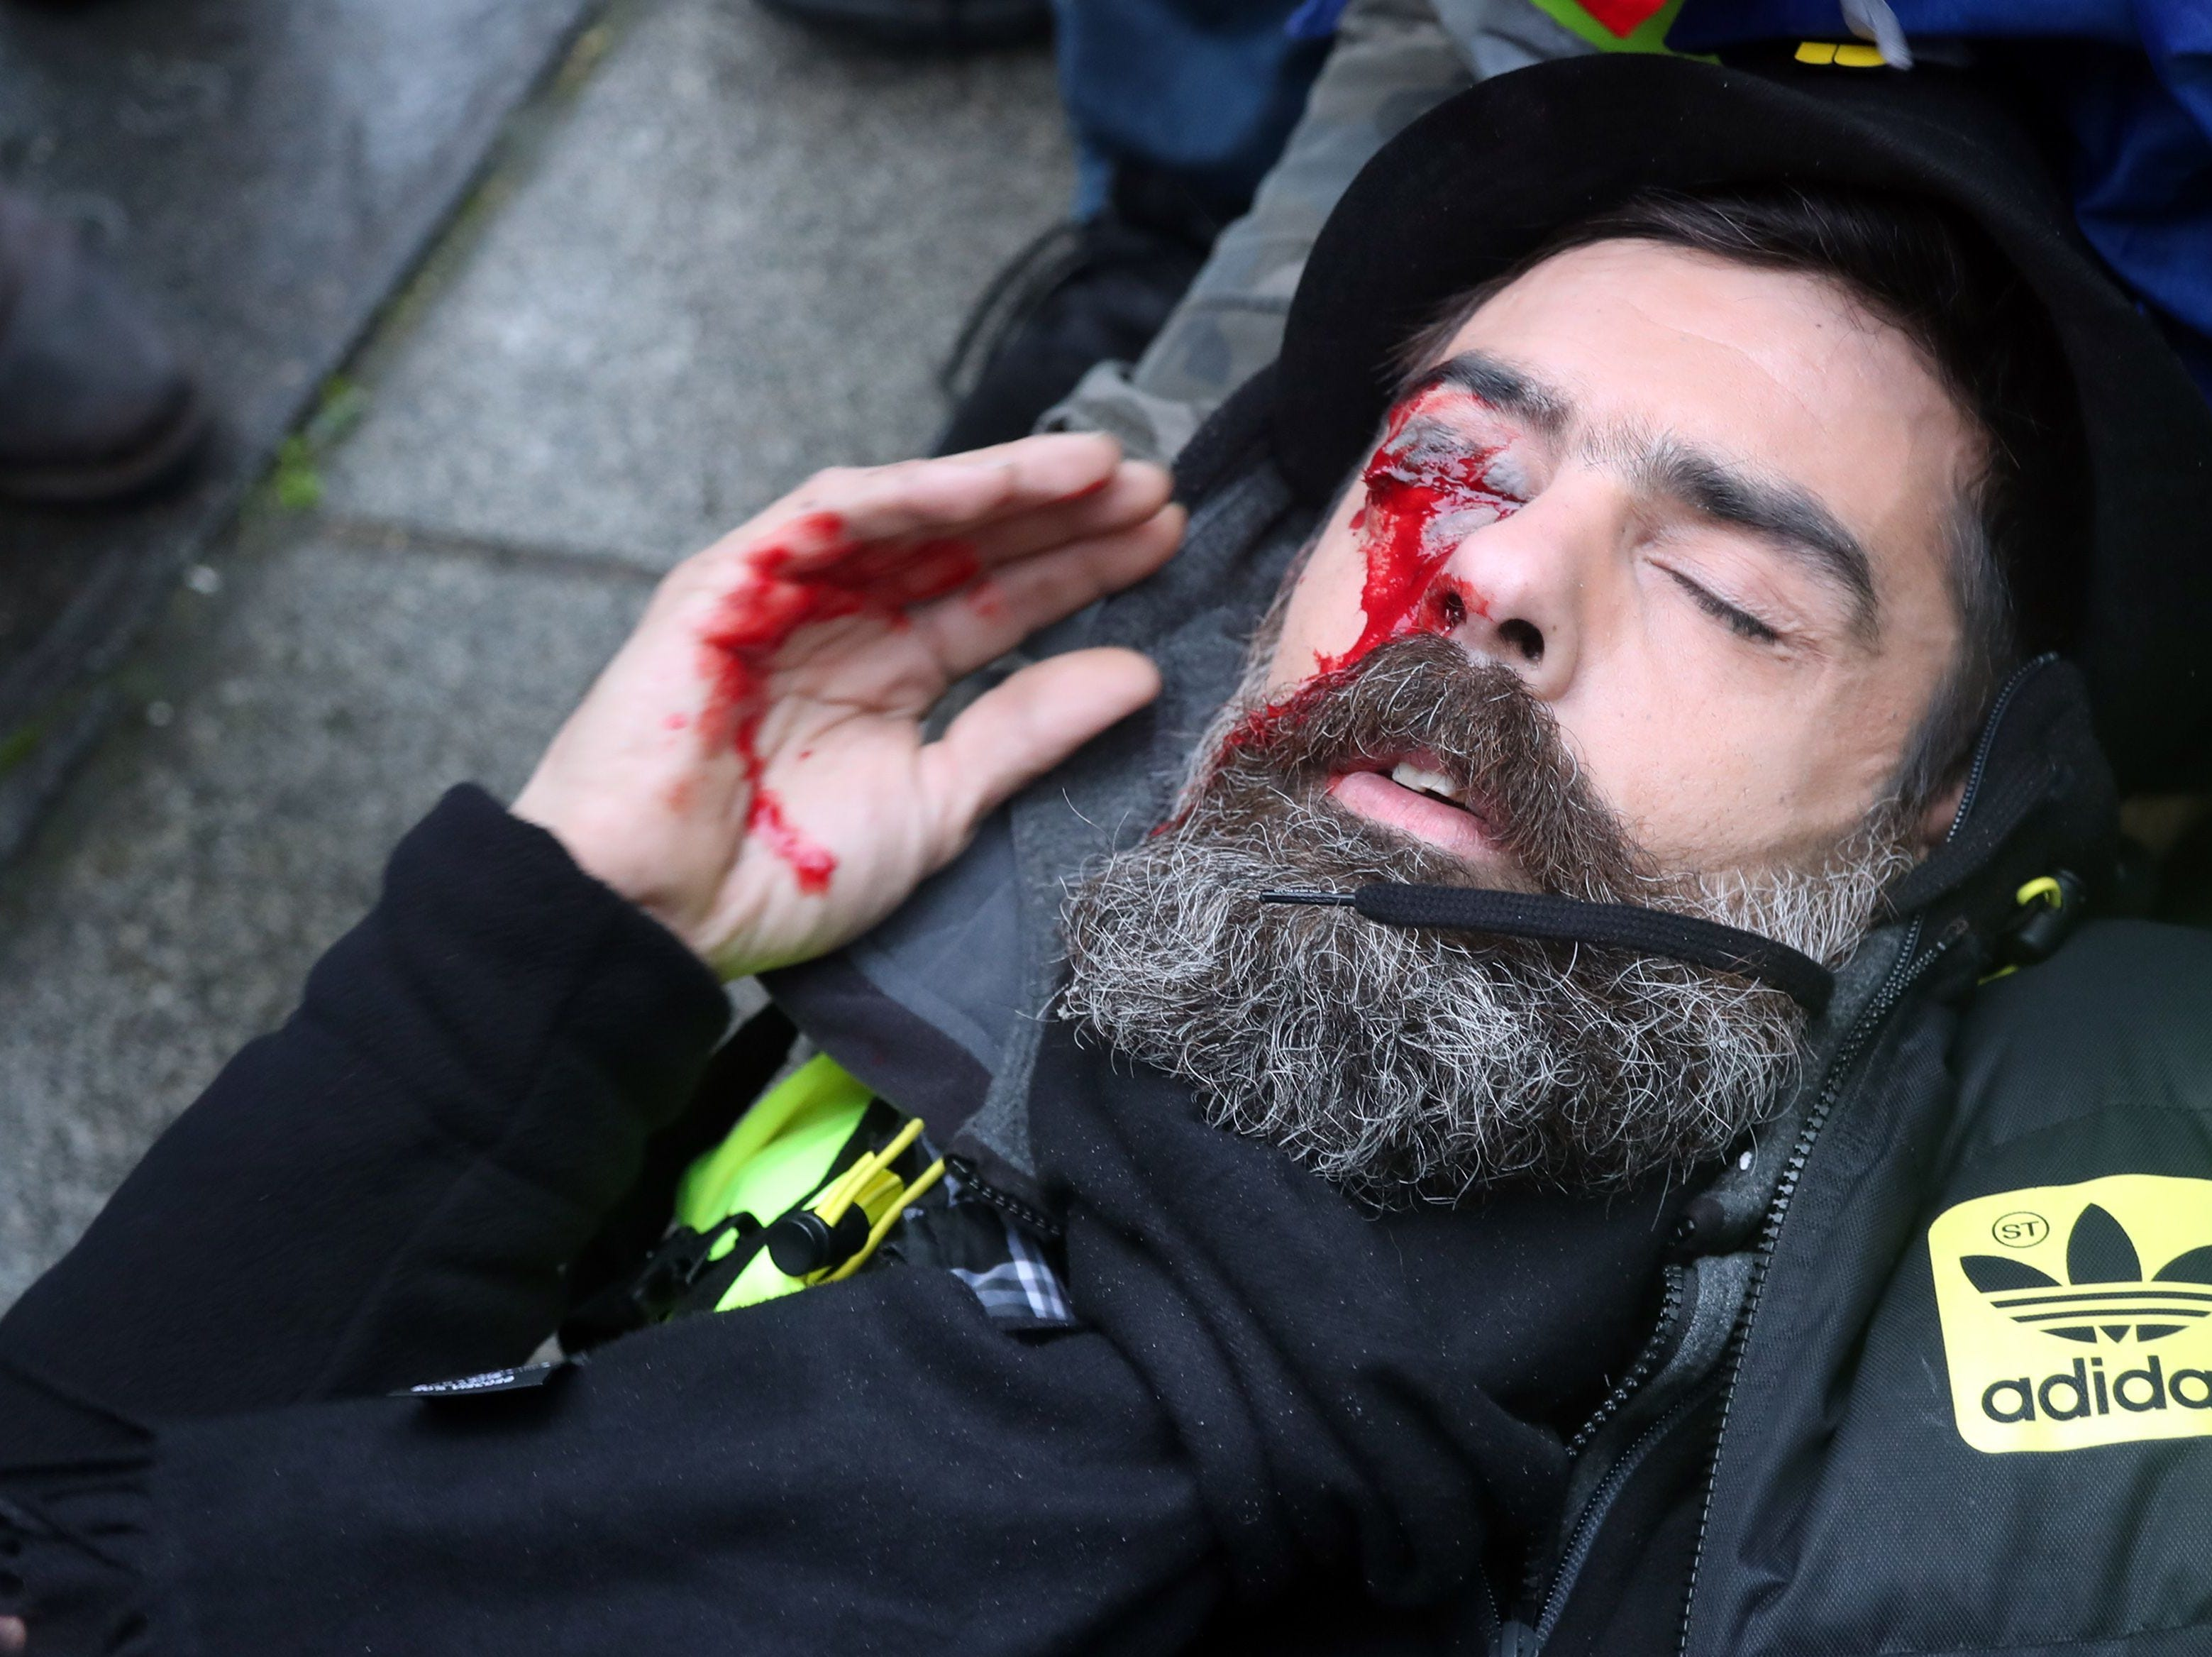 "Jerome Rodrigues, one of the leaders of the yellow vest movement, lies on the street after getting wounded in the eye during clashes with riot police in Paris during an anti-government demonstration called by the Yellow Vests ""Gilets Jaunes"" movement on Jan. 26, 2019."